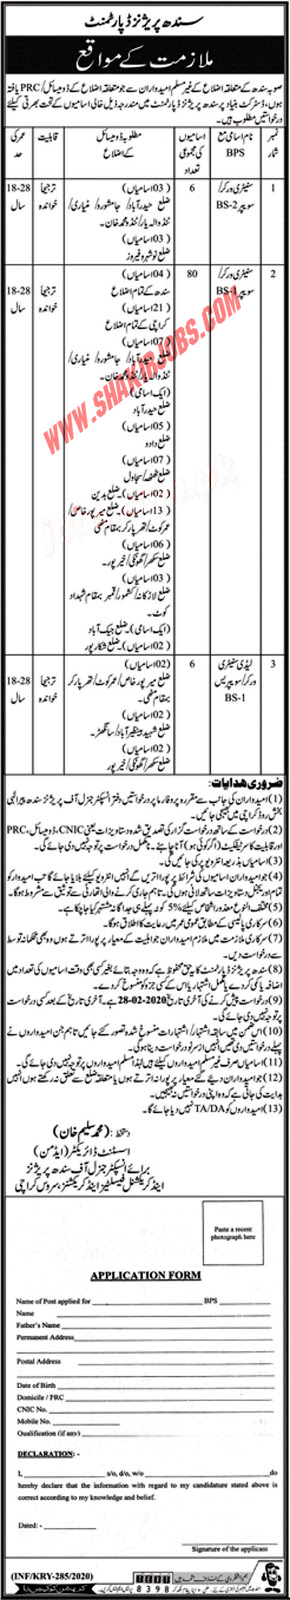 Prisons Department Jobs 2020 for Under Matric || Police Department Jobs